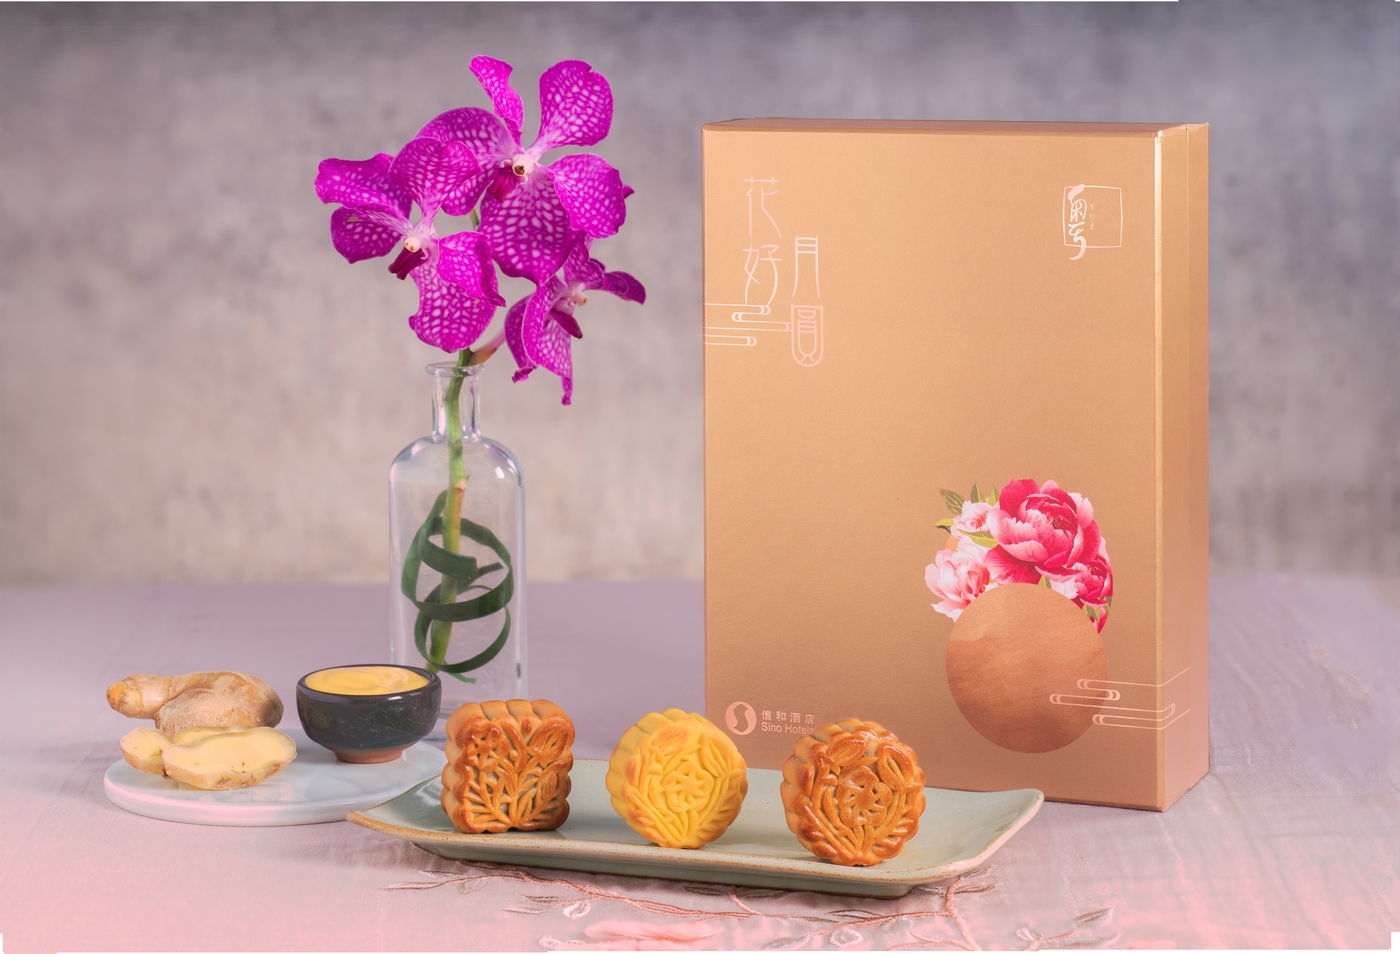 where to buy mooncakes Hong kong 2019 Sino Hotels giftbox